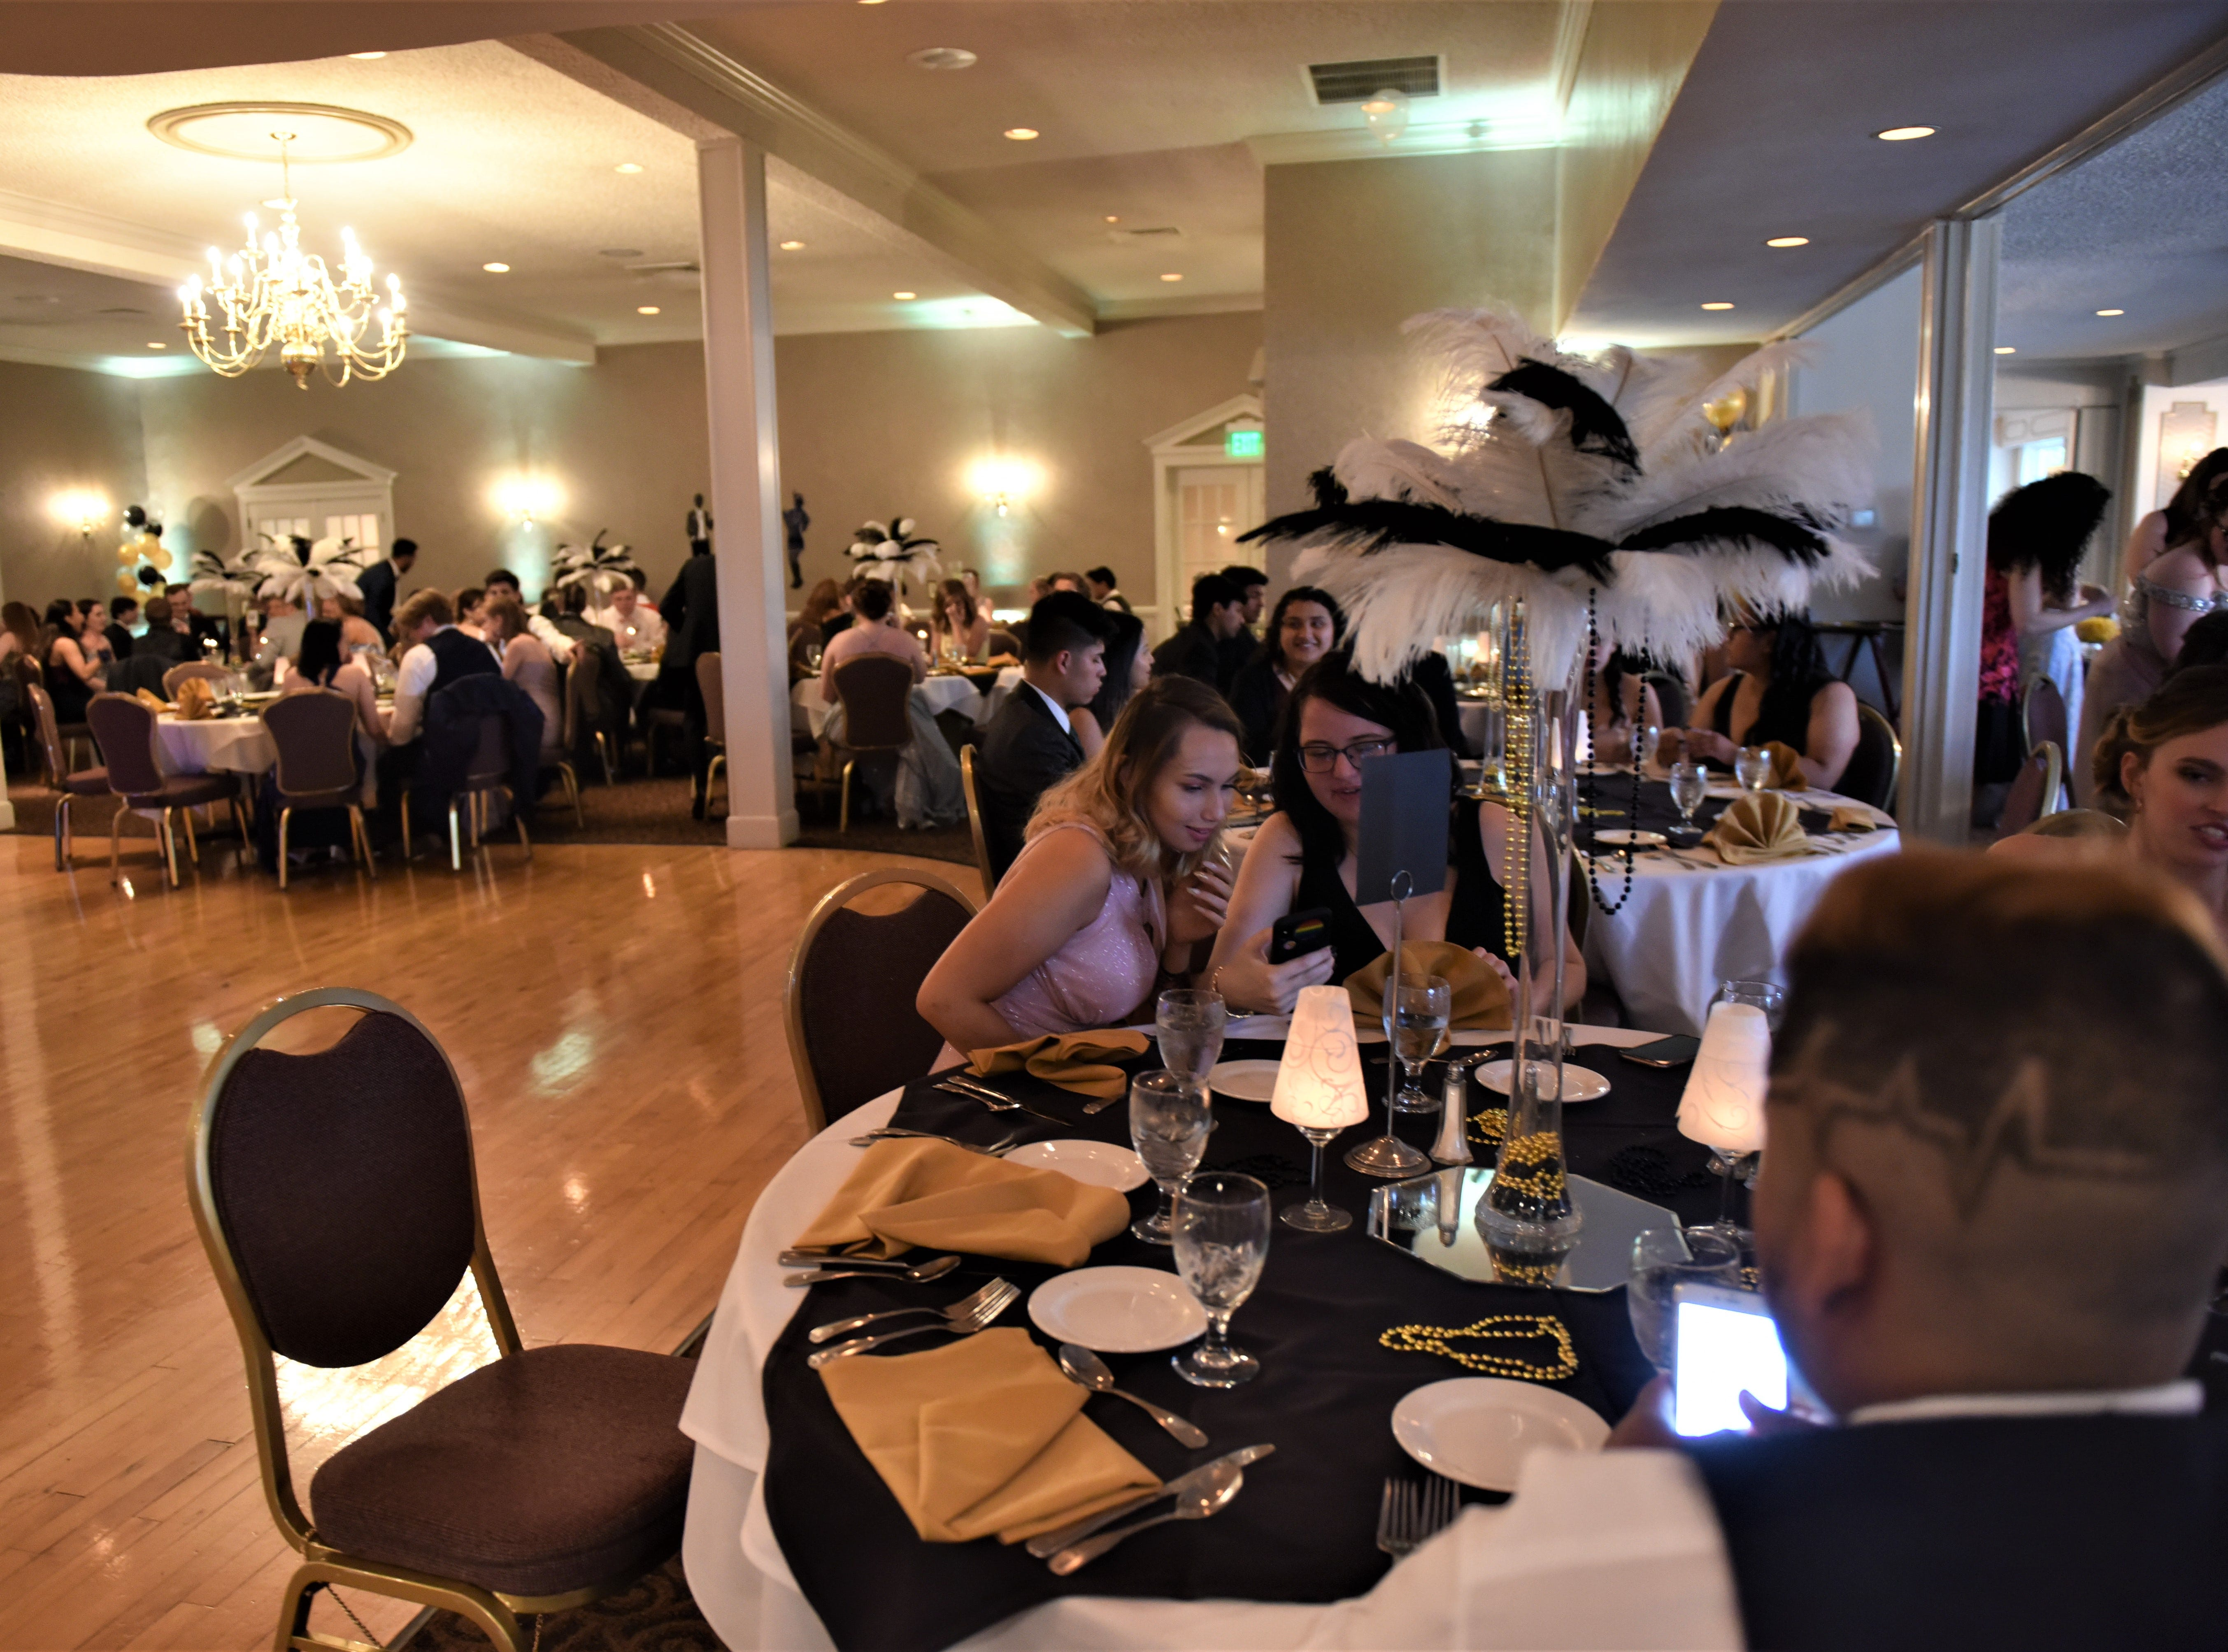 Hanover High School students at their '20s-themed prom night at the Hanover Country Club in Abbottstown on May 3, 2019.